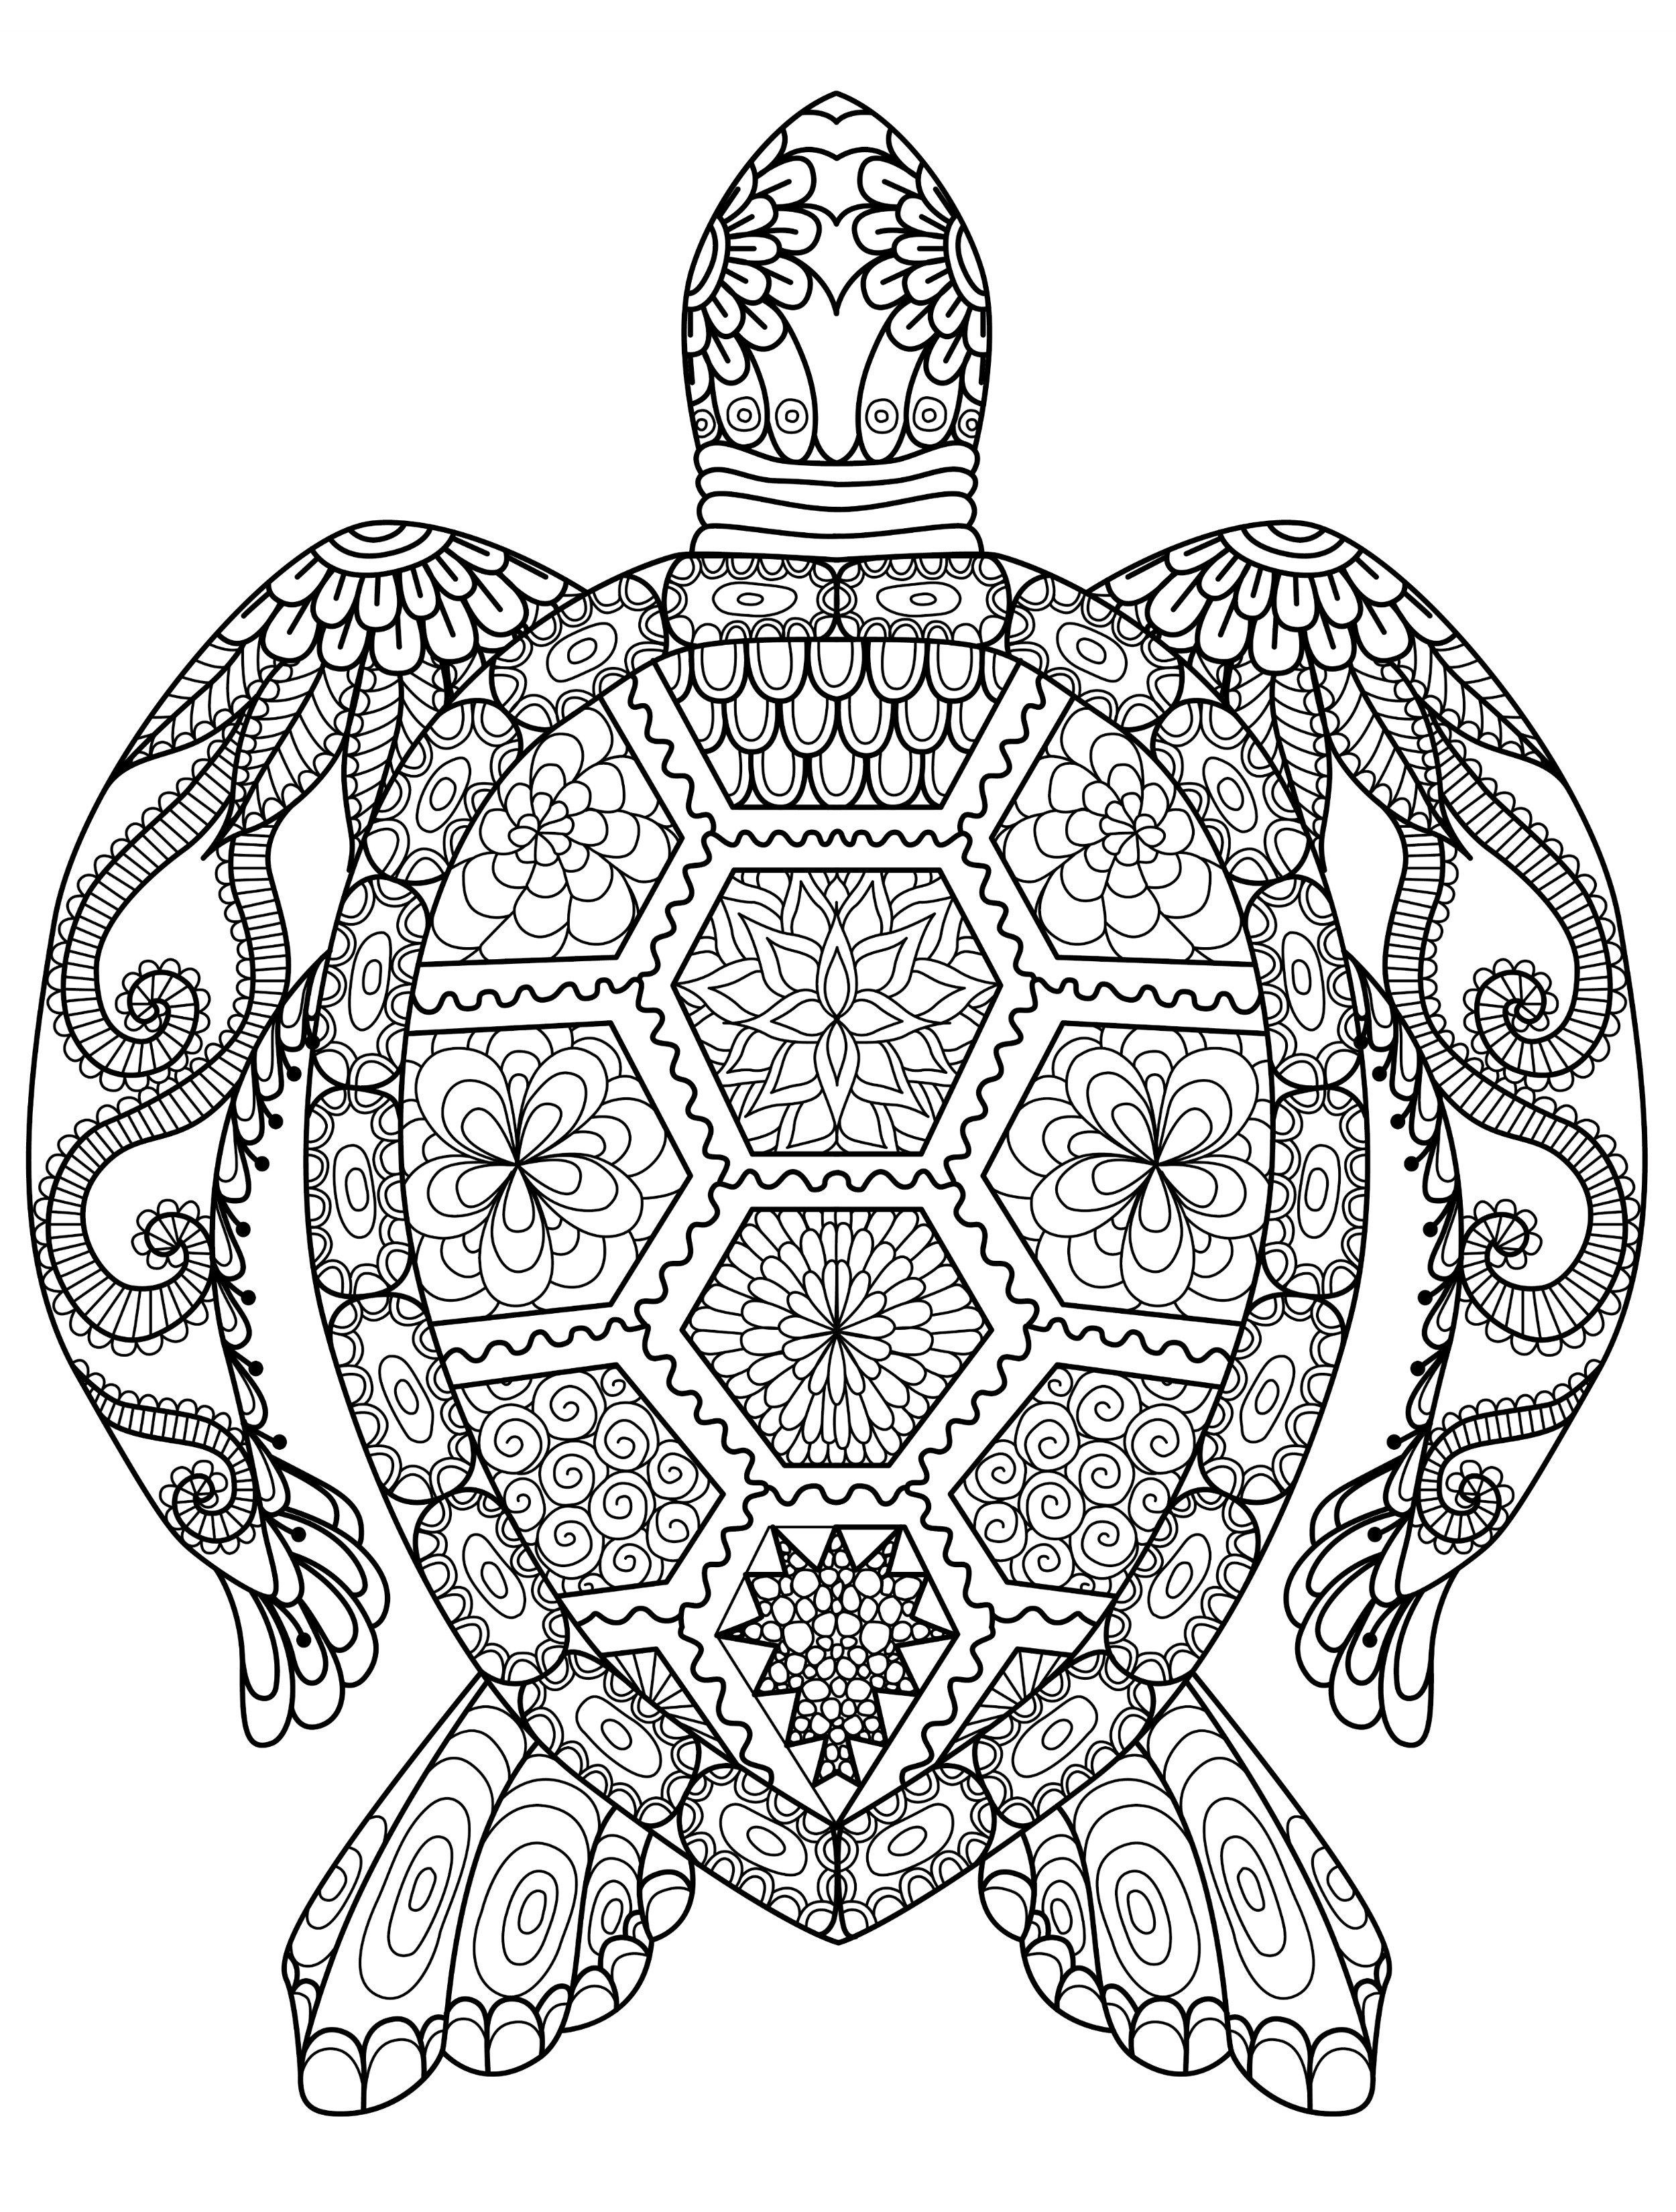 Best ideas about Free Mandala Coloring Pages For Adults . Save or Pin 20 Gorgeous Free Printable Adult Coloring Pages … Now.